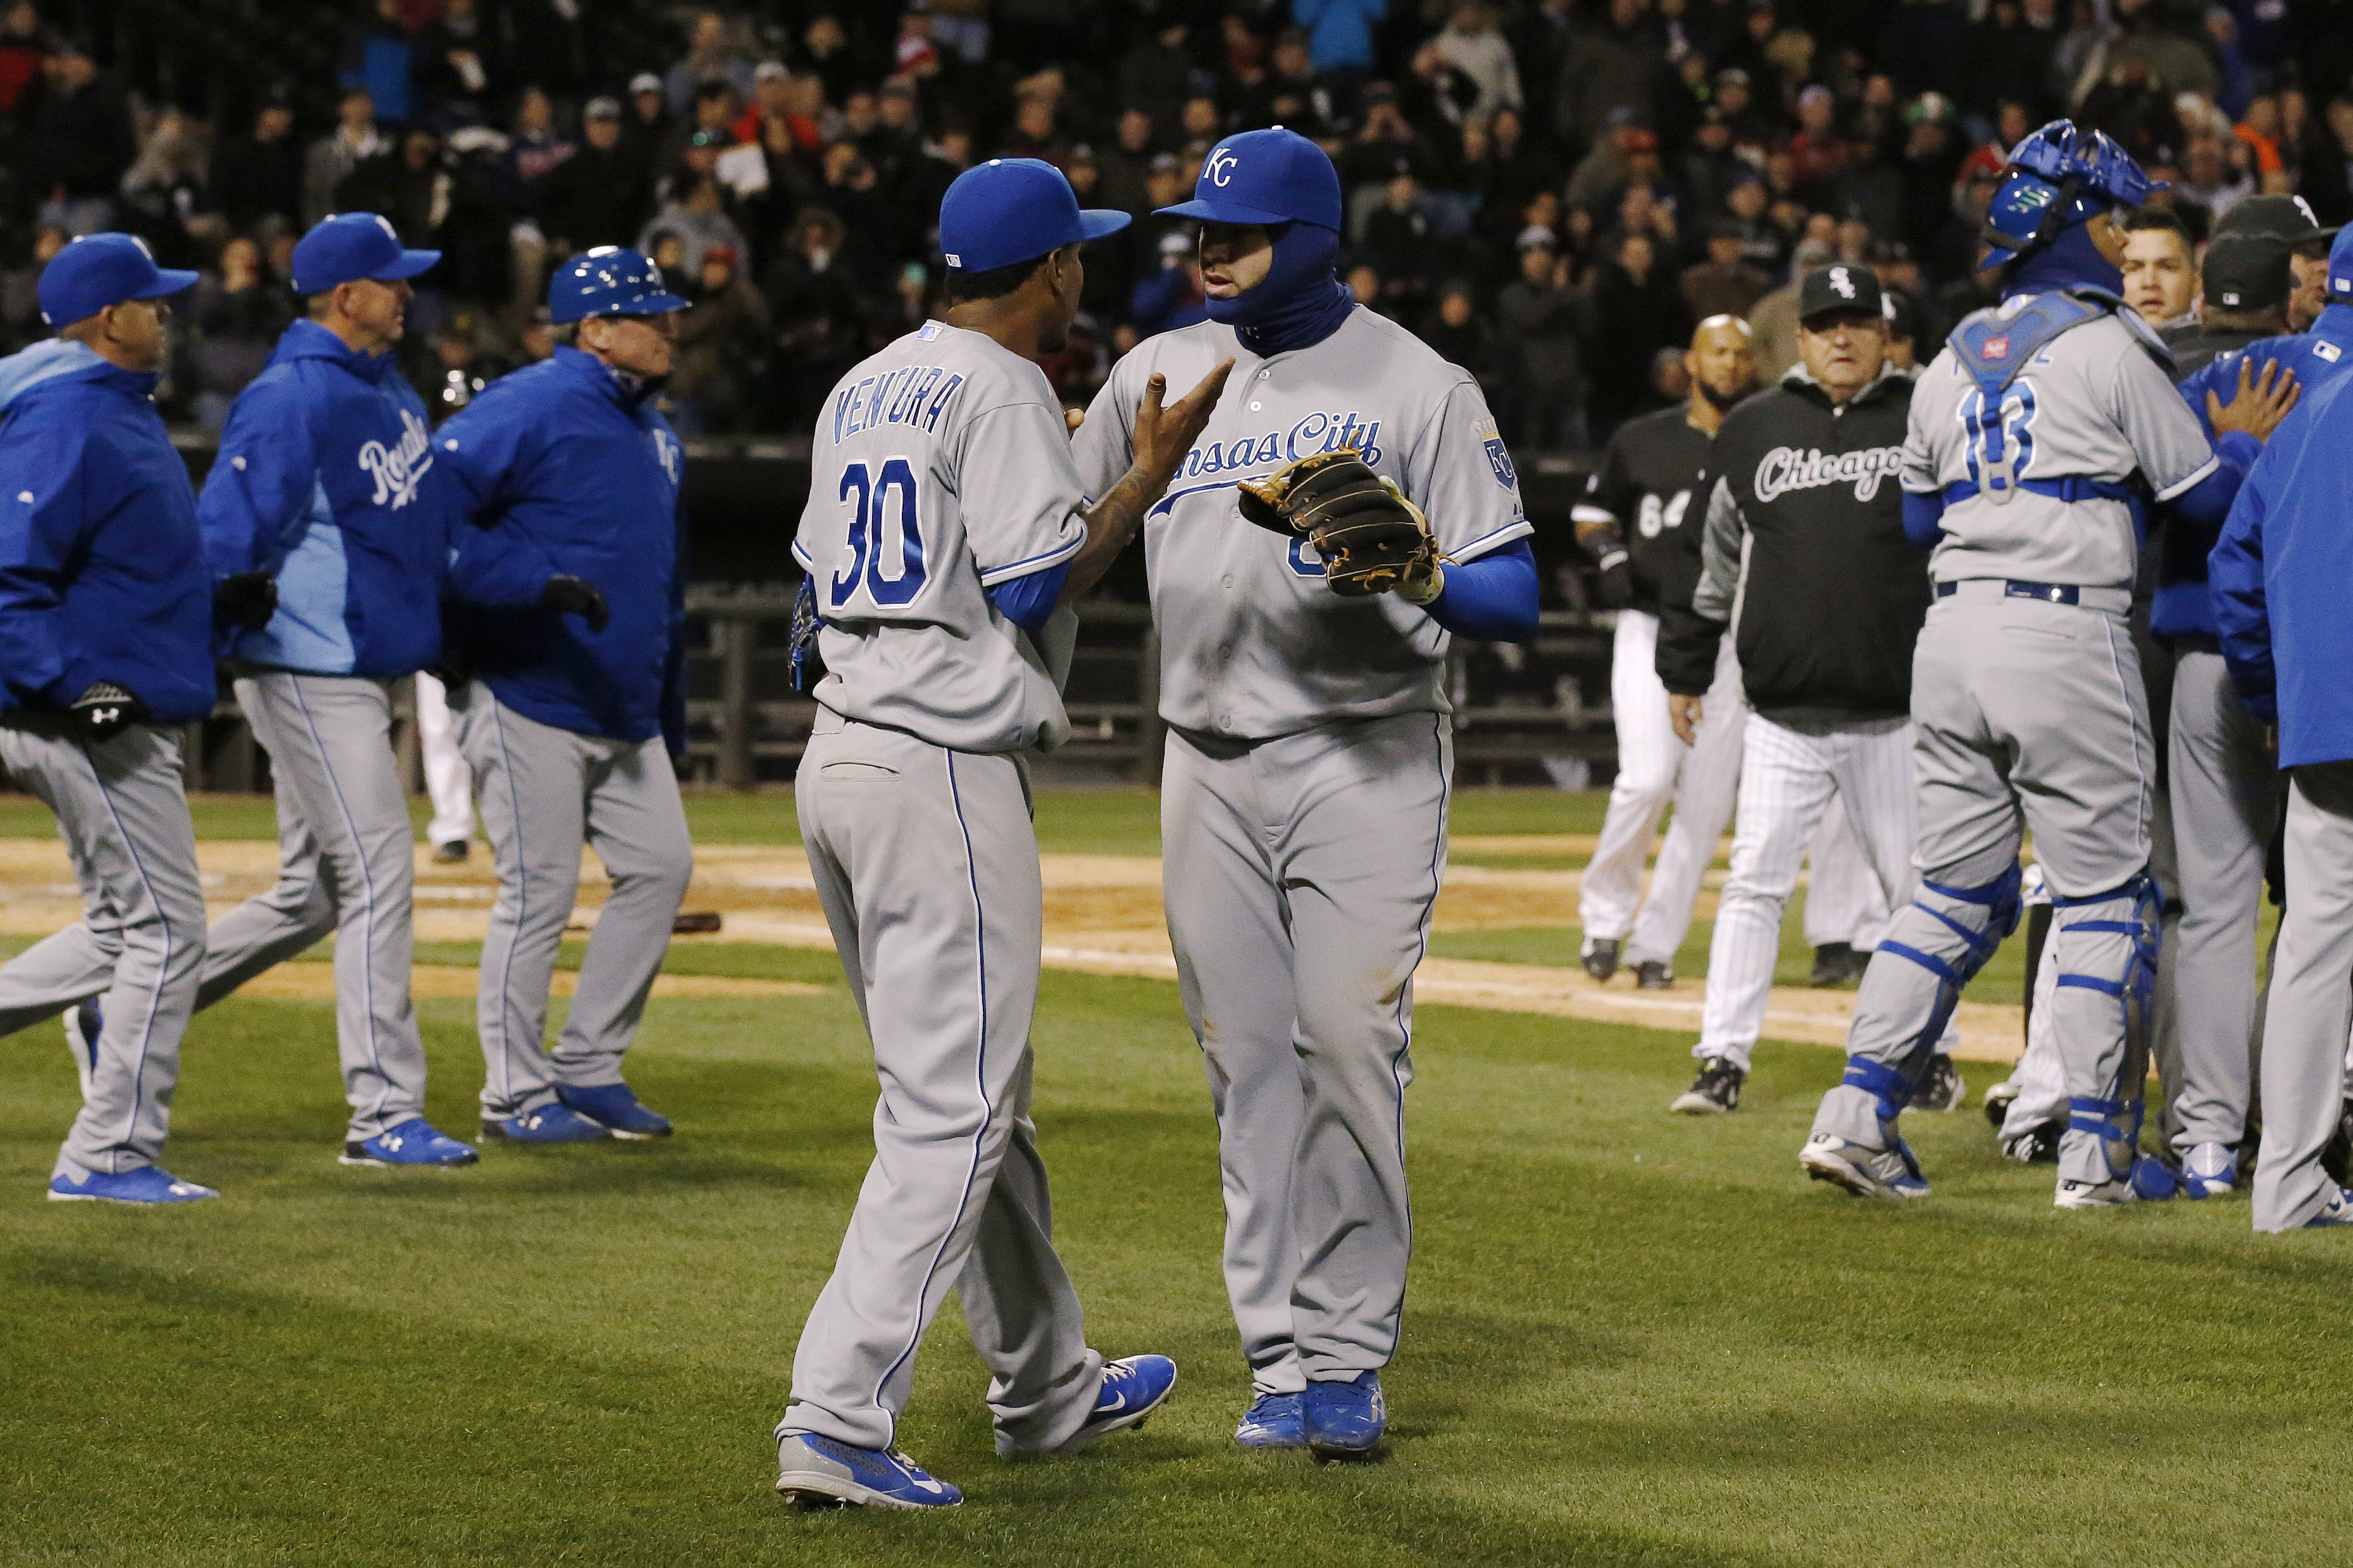 Kansas City Royals starting pitcher Yordano Ventura (30) is pulled aside by teammate Mike Moustakas as the benches clear during the seventh inning of a baseball game against the Chicago White Sox on Thursday, April 23, 2015, in Chicago. The Royals won 3-2